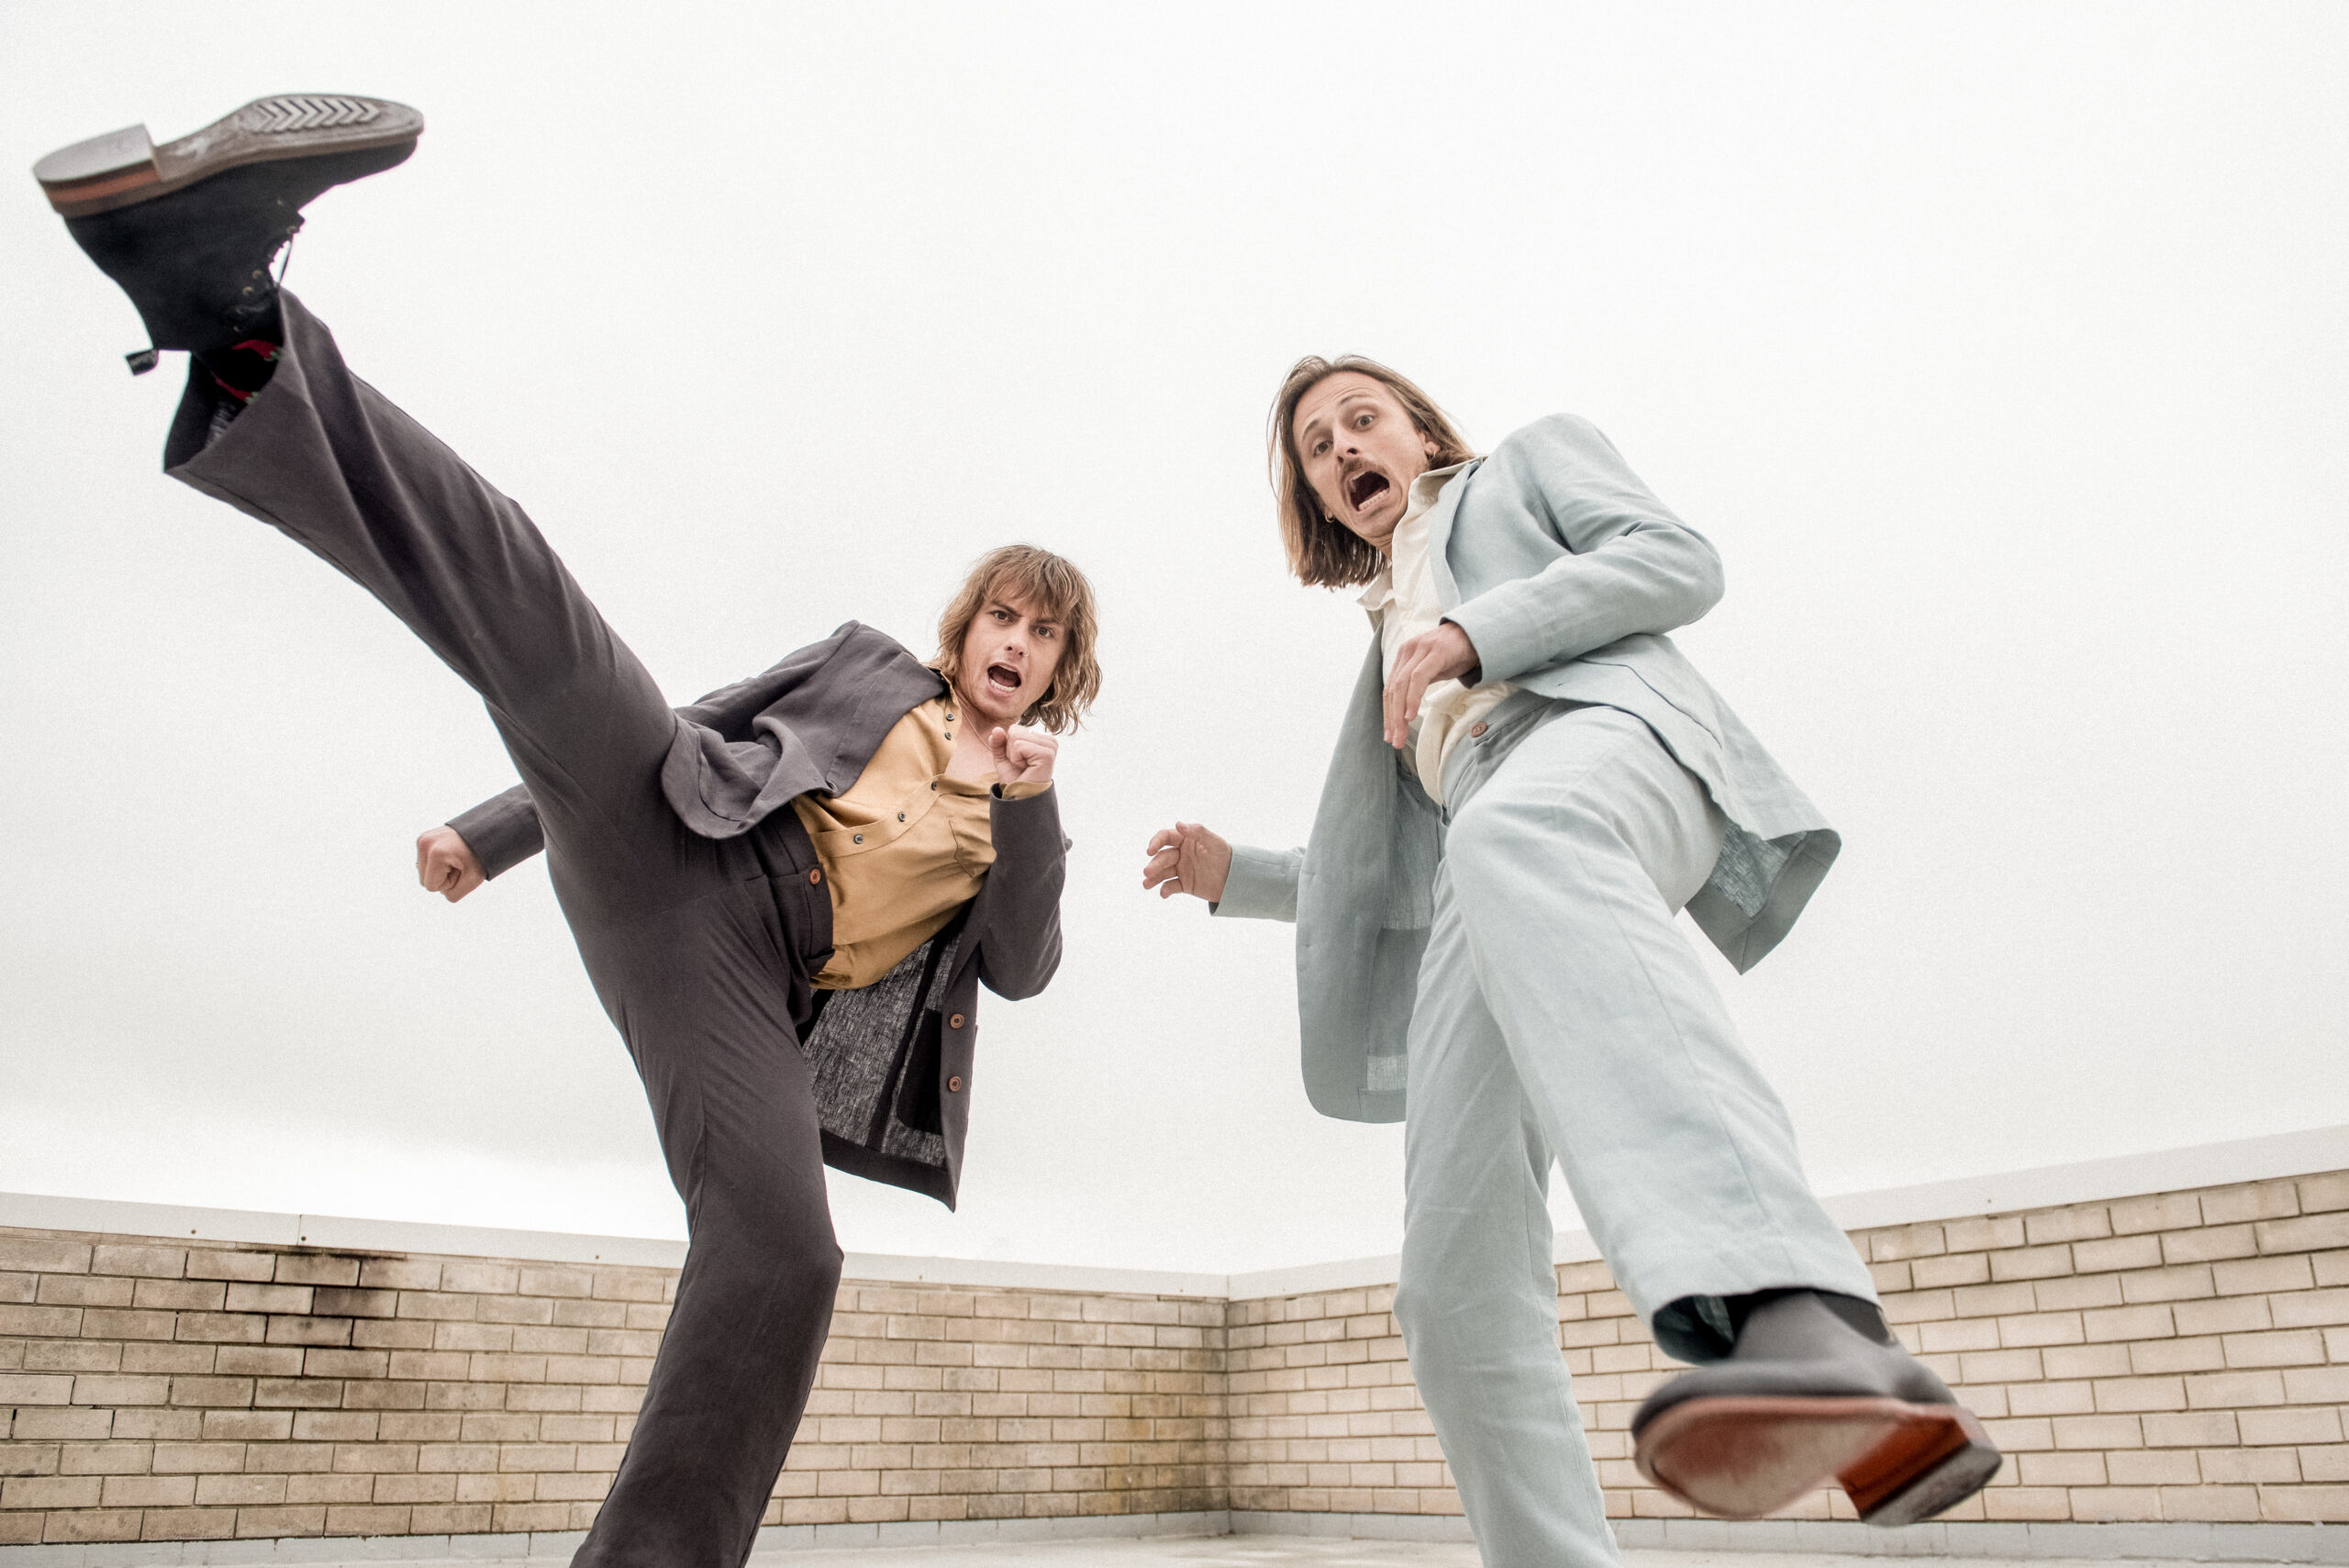 SERENADE ANNOUNCES PATRON ARTIST OF THE MONTH LIME CORDIALE